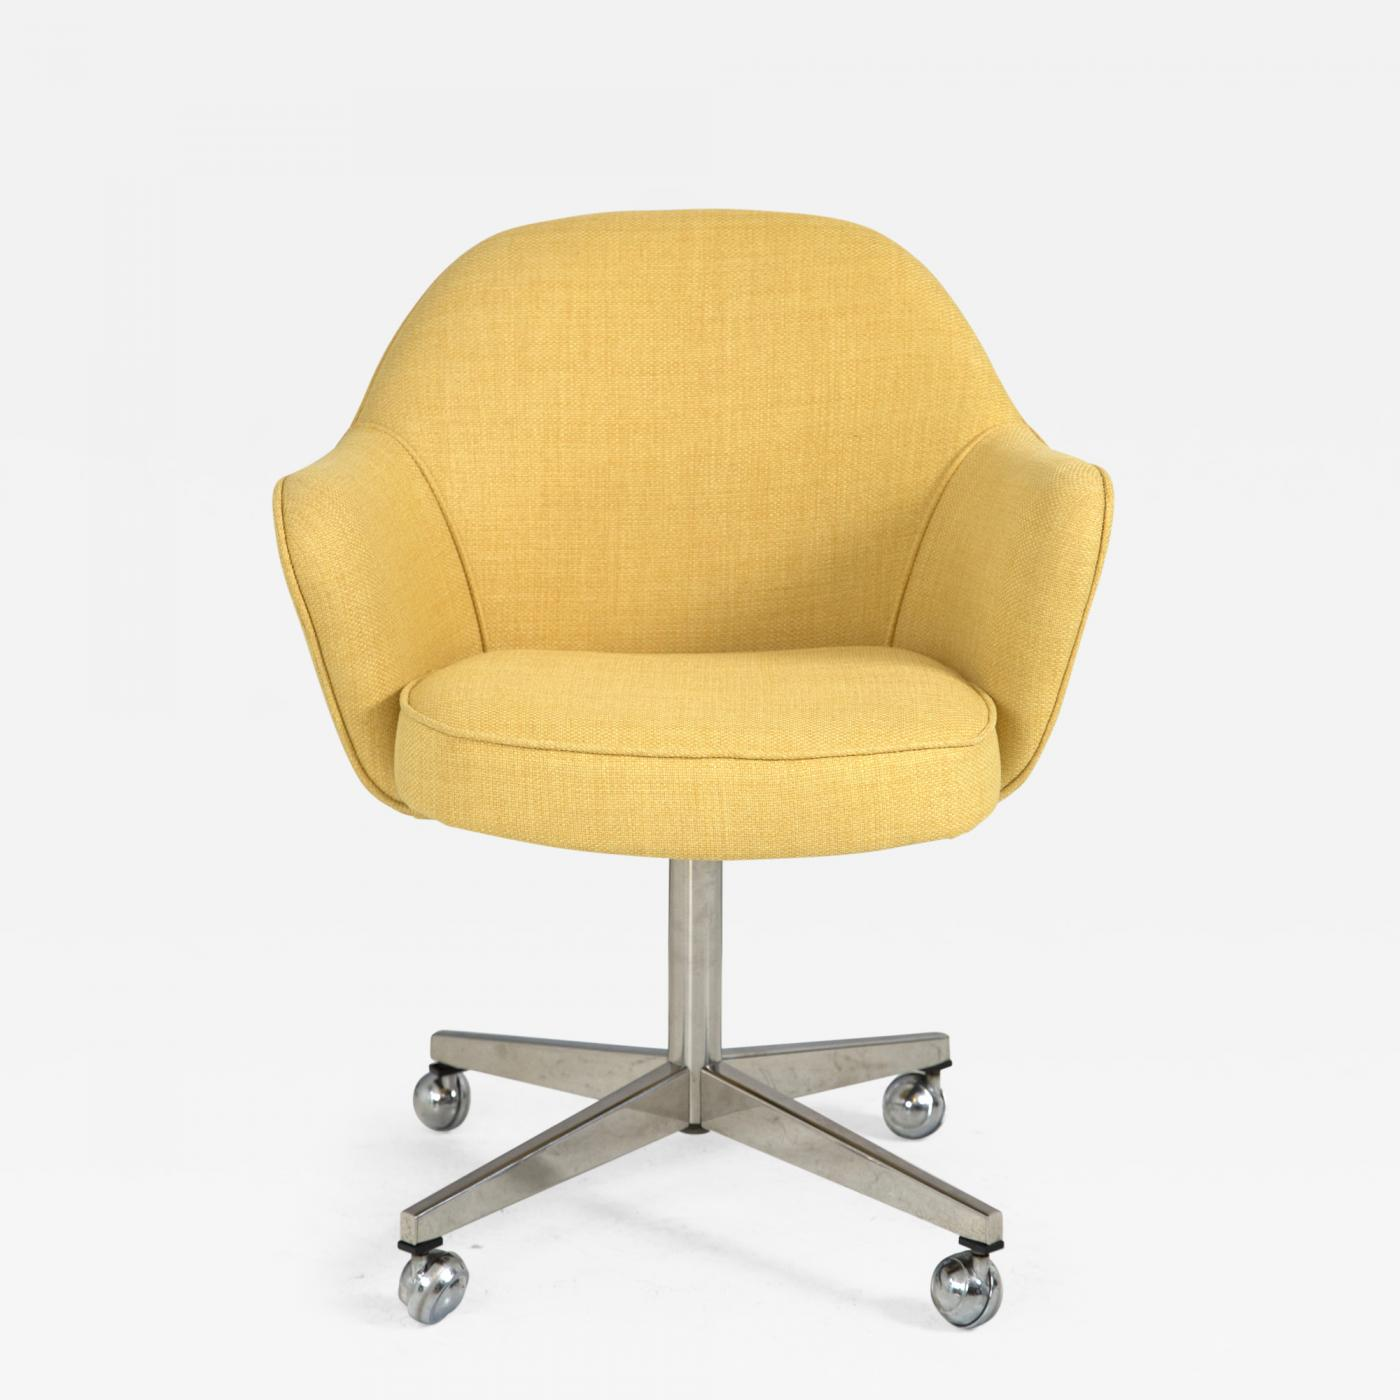 Knoll - Knoll Desk Chair in Yellow Microfiber